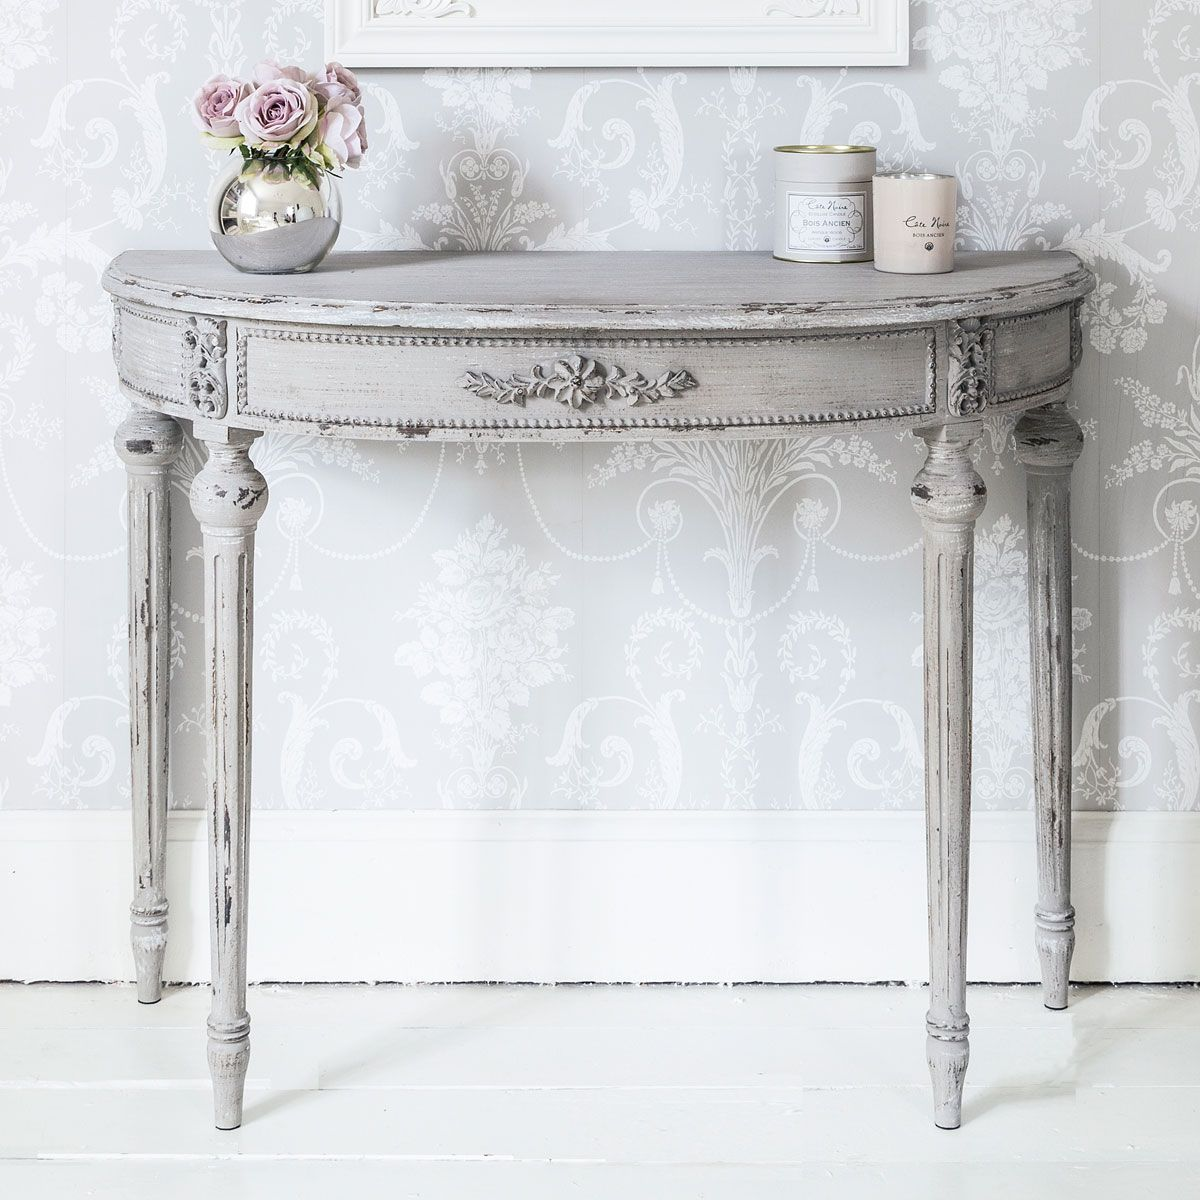 half moon table for aesthetical look hometowntimes linda white accent dale tiffany ceiling lights rechargeable battery lamp long wooden antique victorian marble top end tables bbq